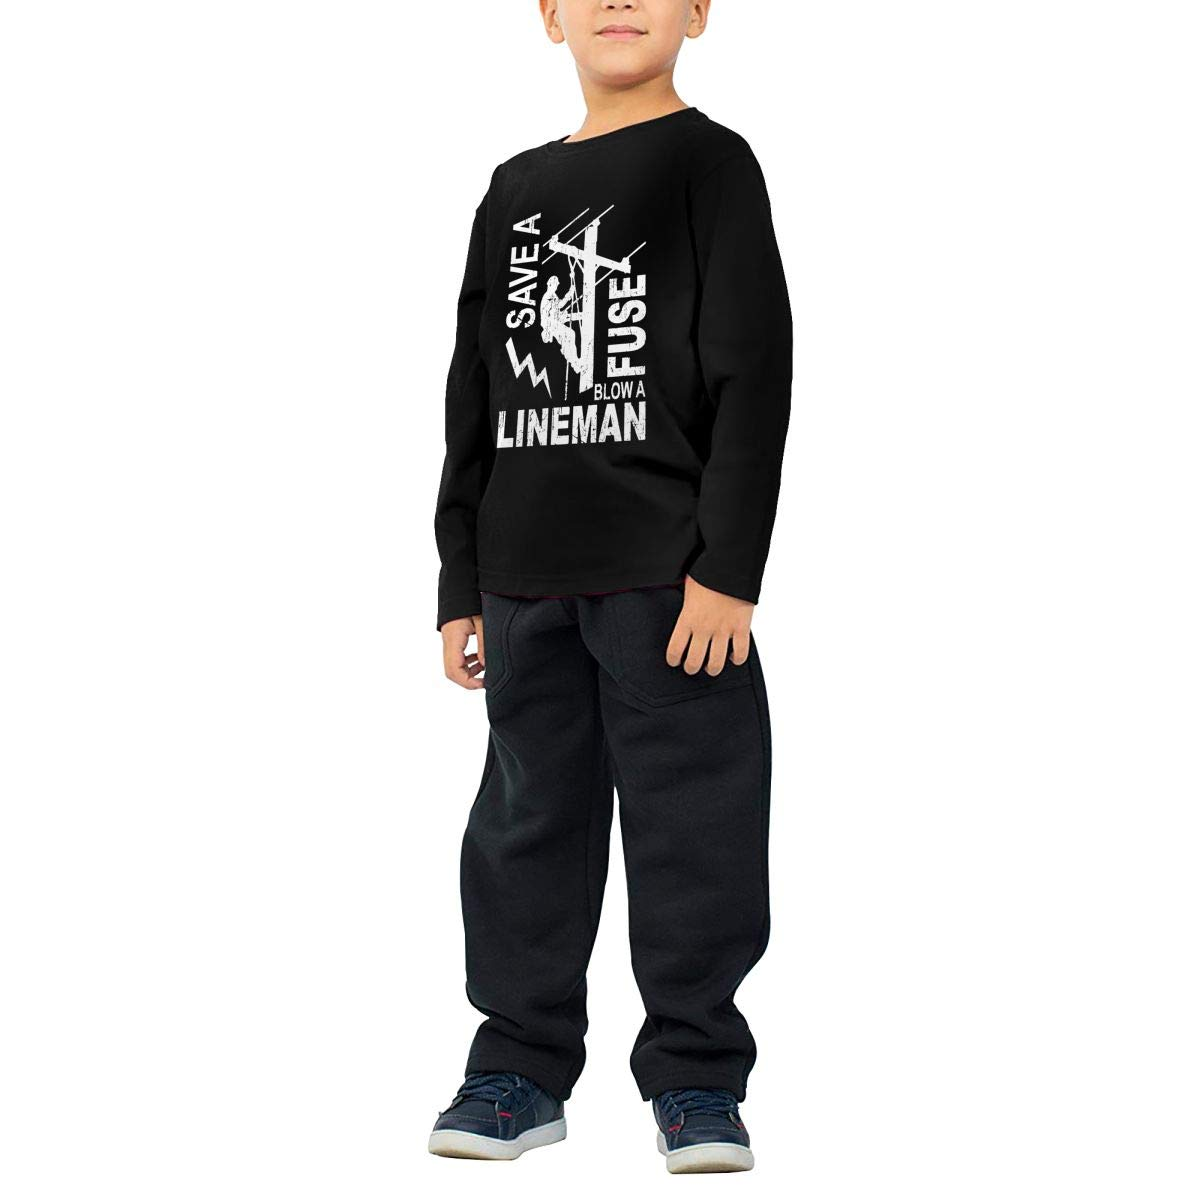 Lineman Save A Fuse Blow A Lineman Linemen Childrens Personalized Long Sleeve T Shirts Cotton Round Collar T Shirts